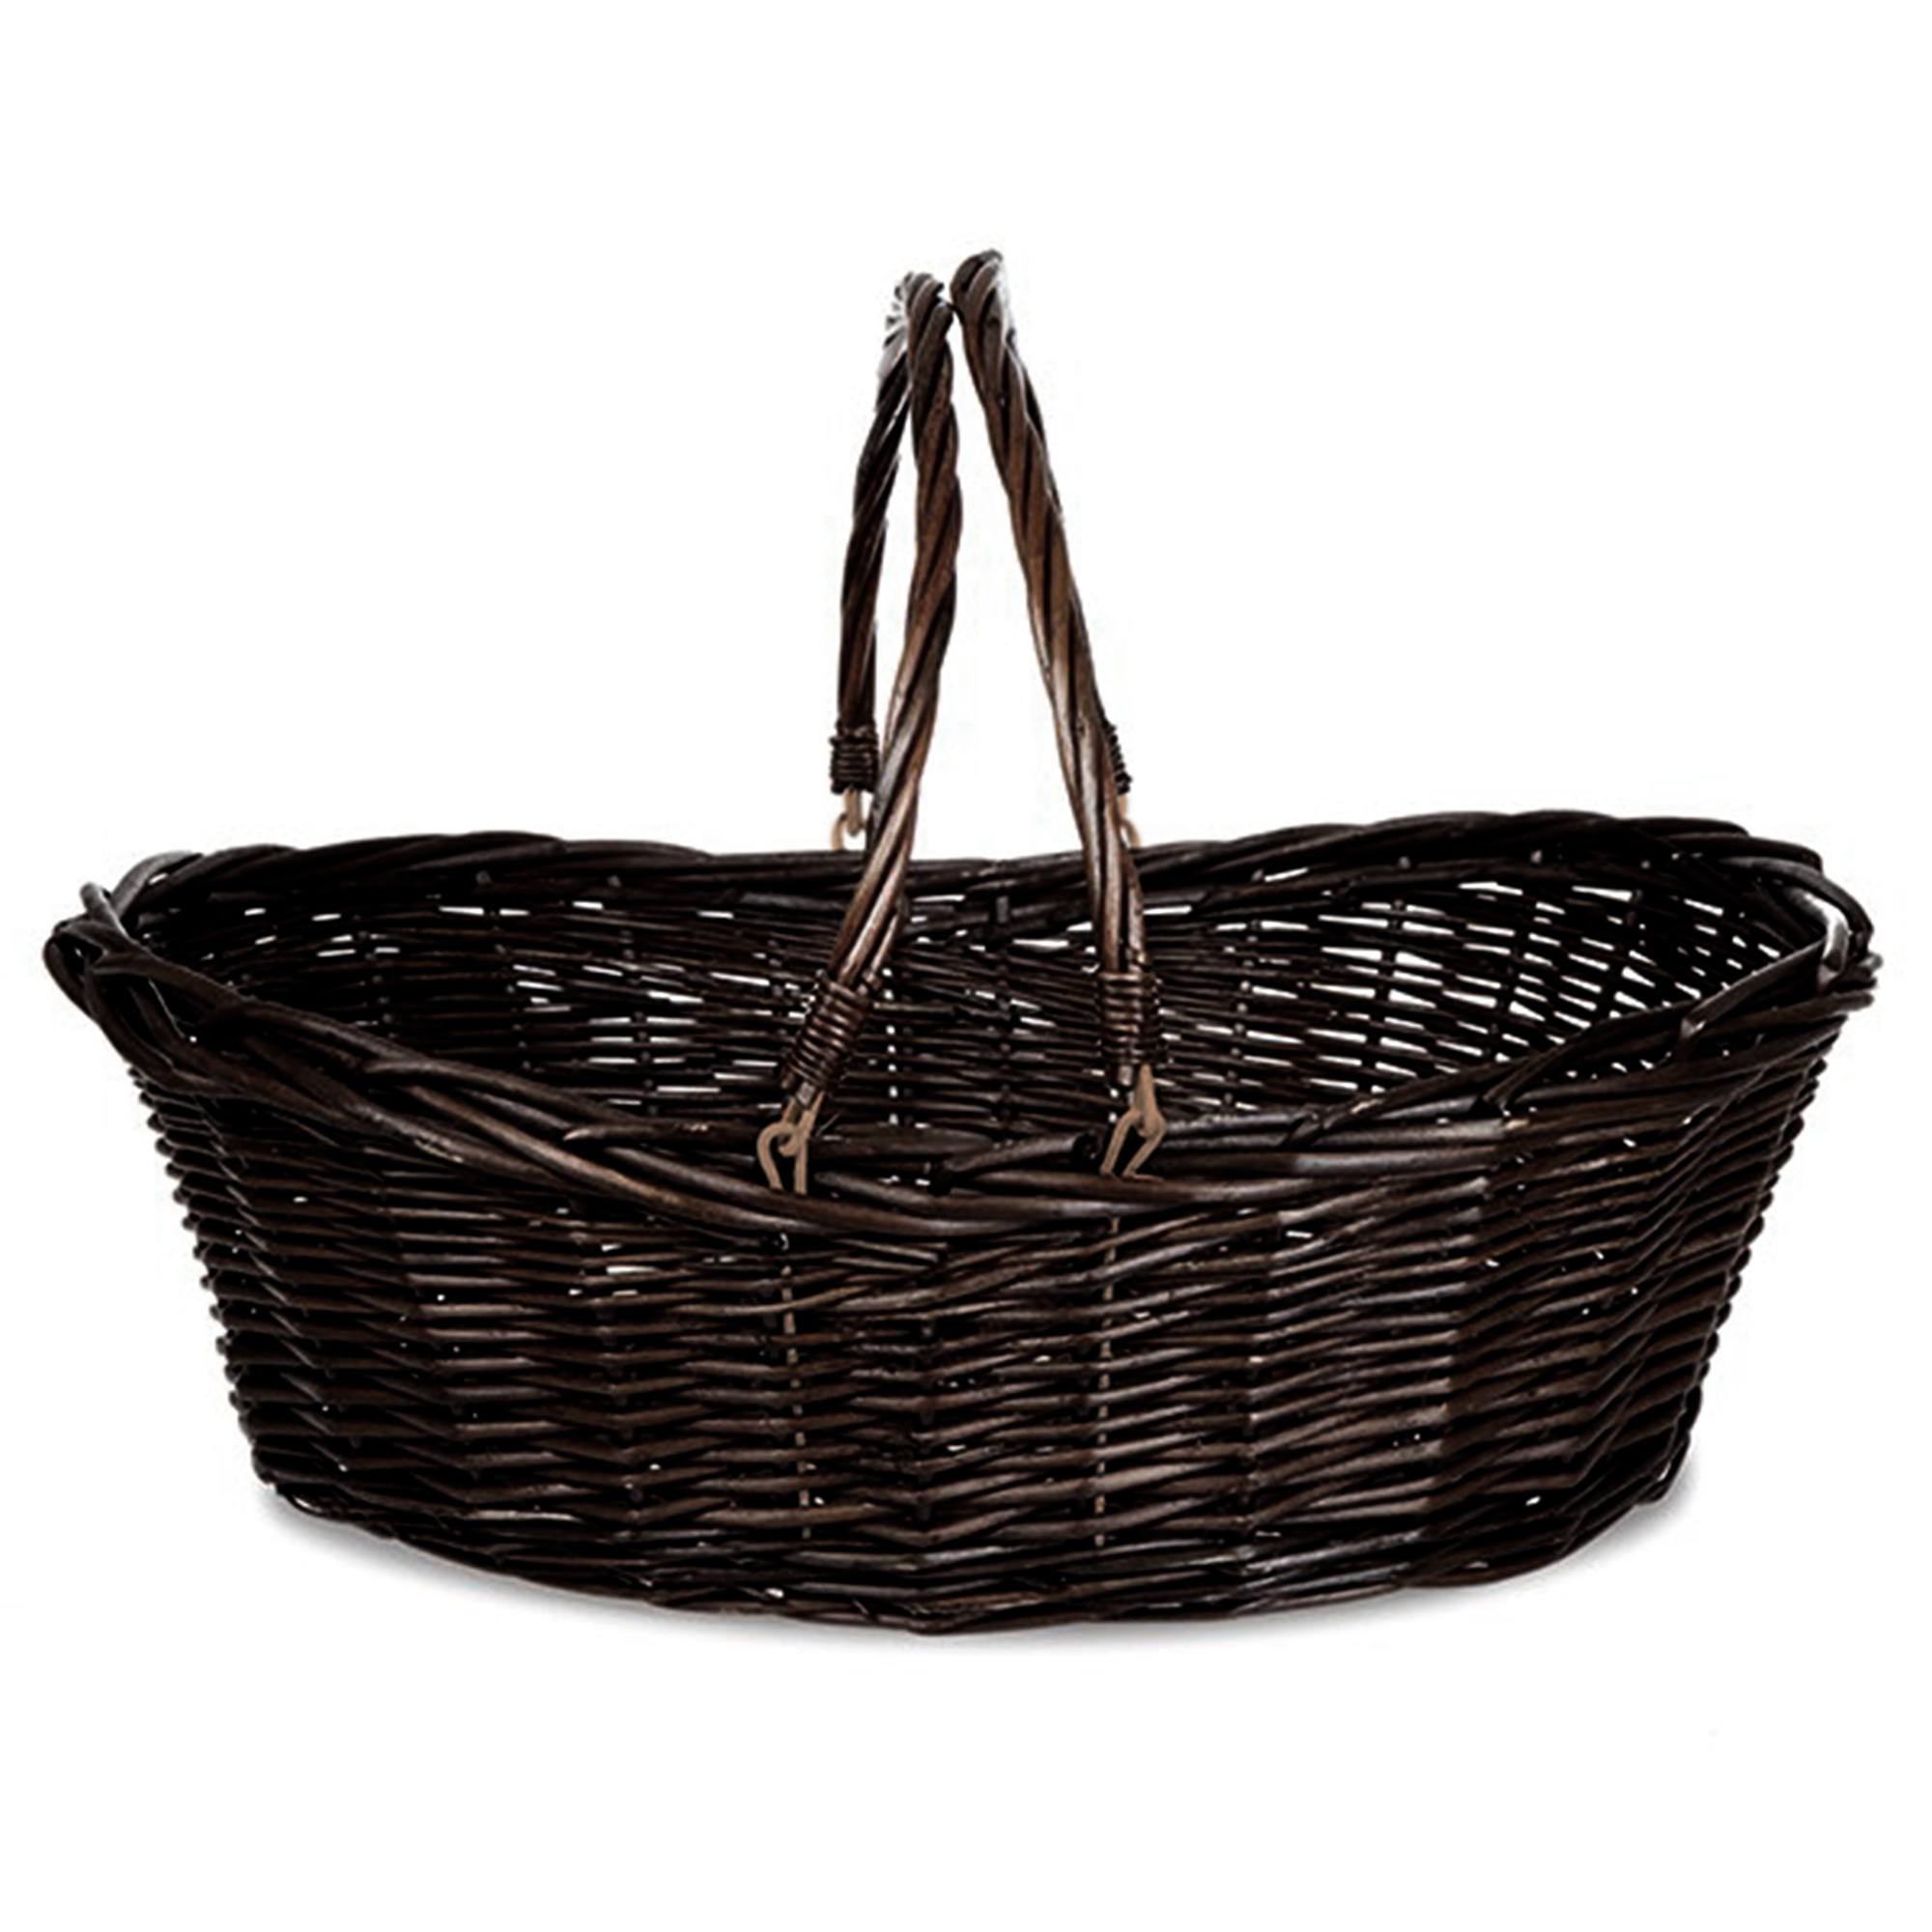 Brown Stain Shopper Wicker Basket 23in